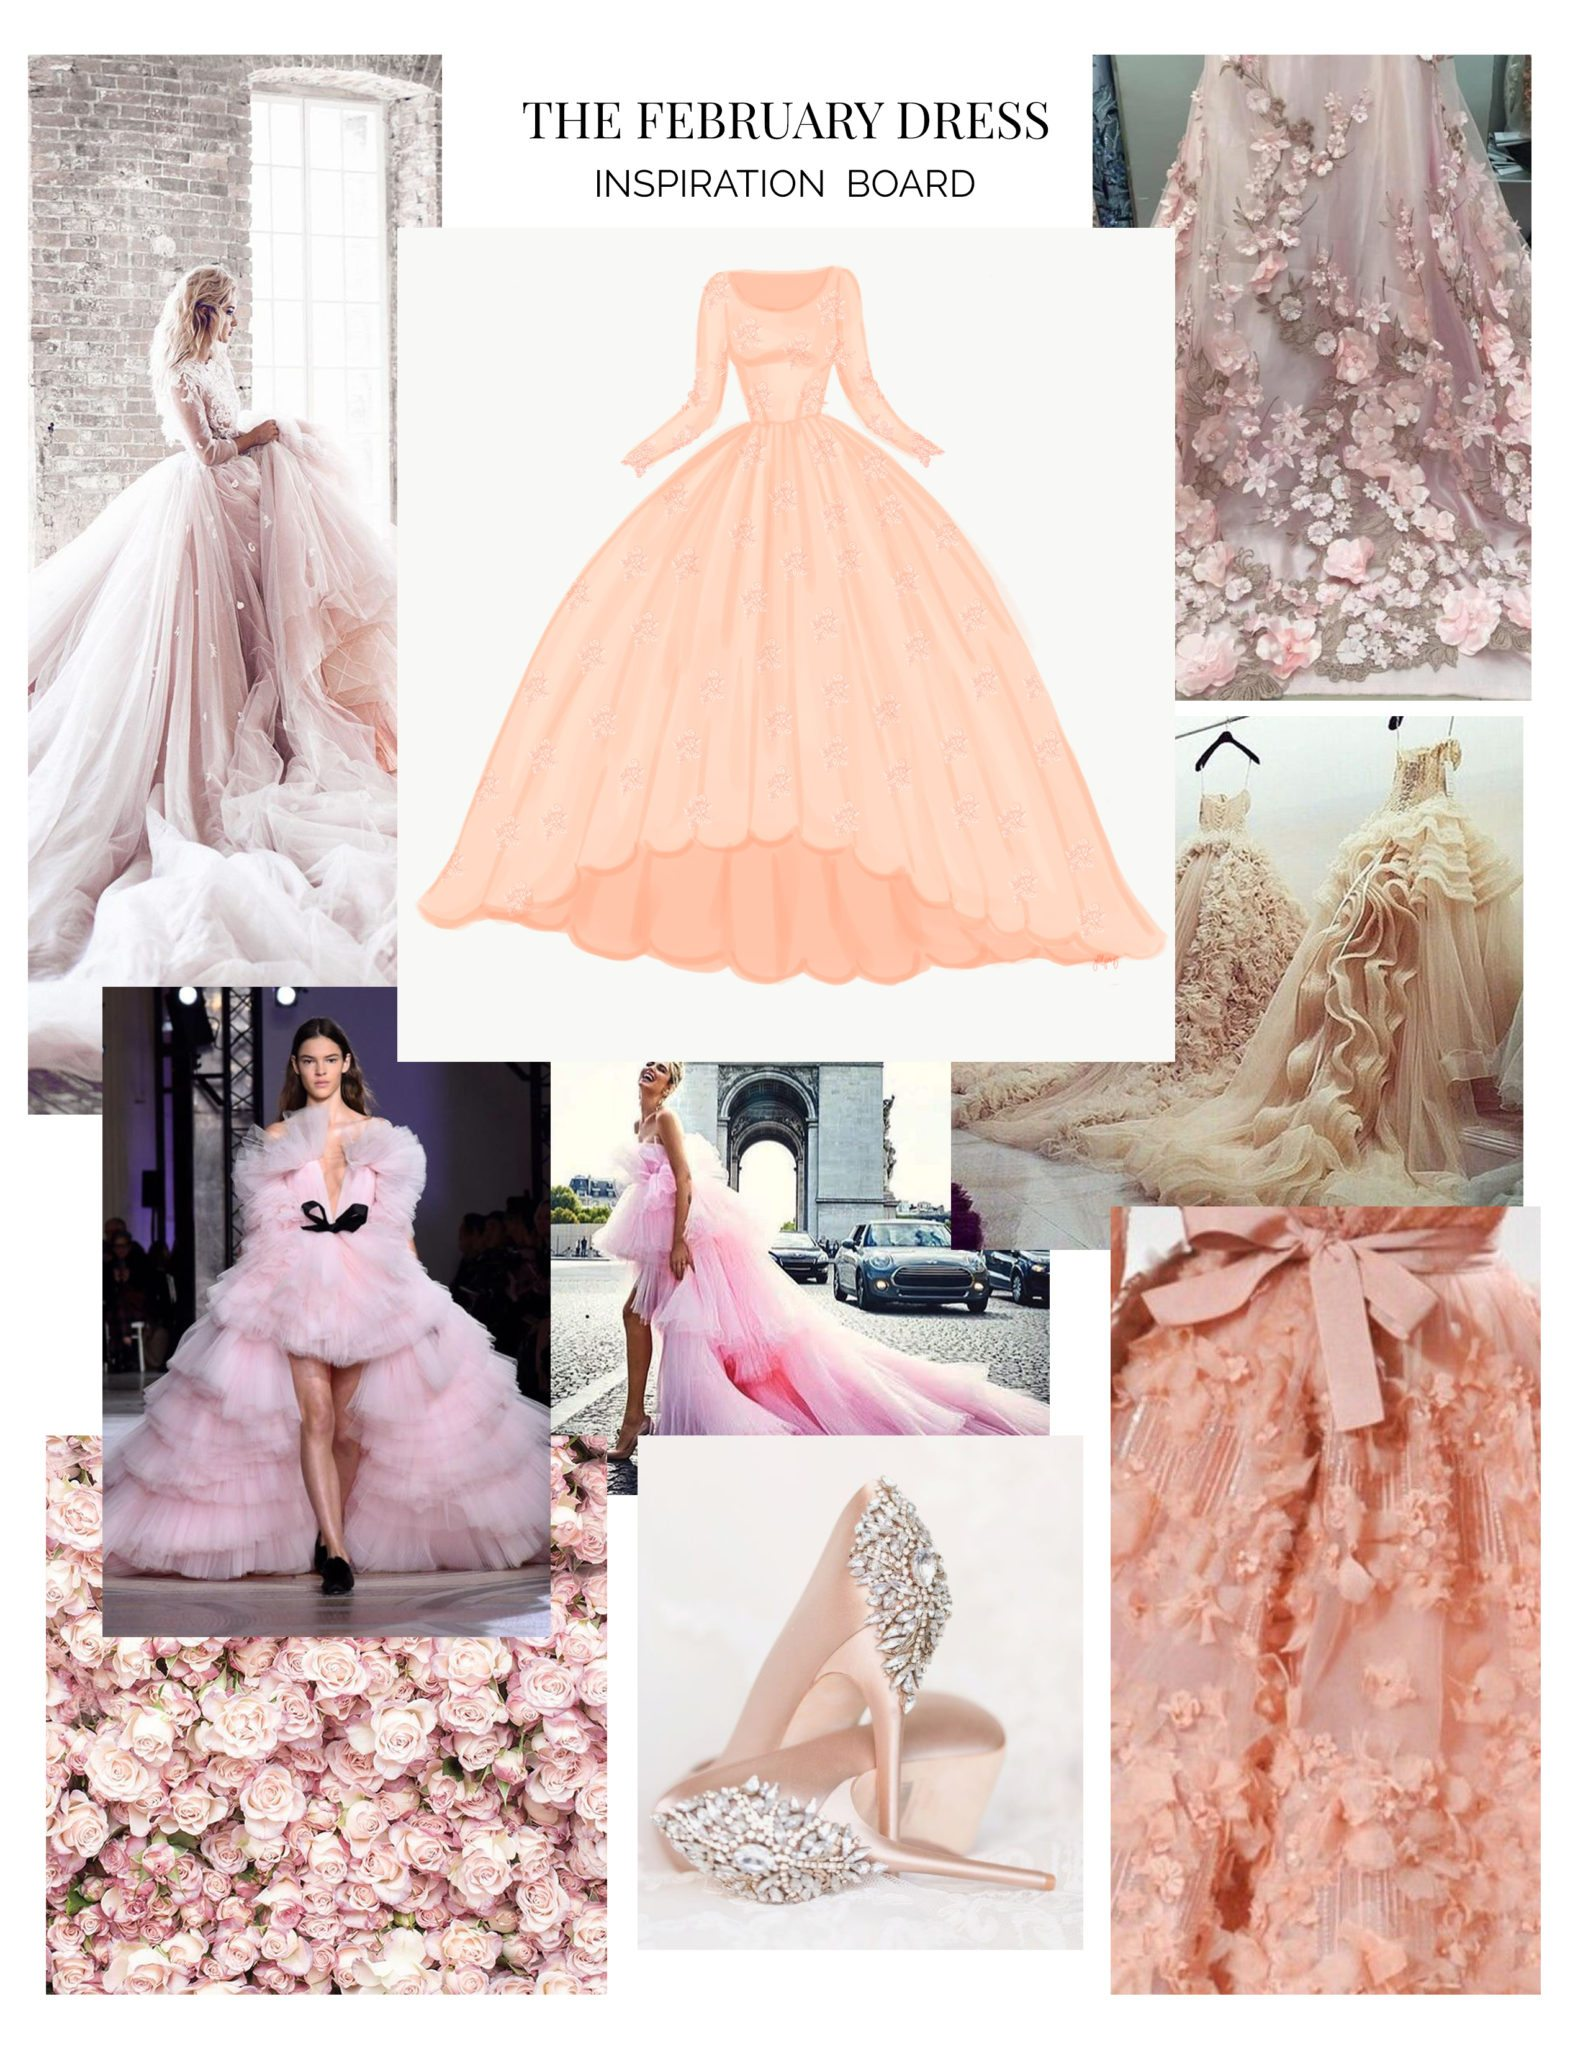 The February Dress Inspiration Board